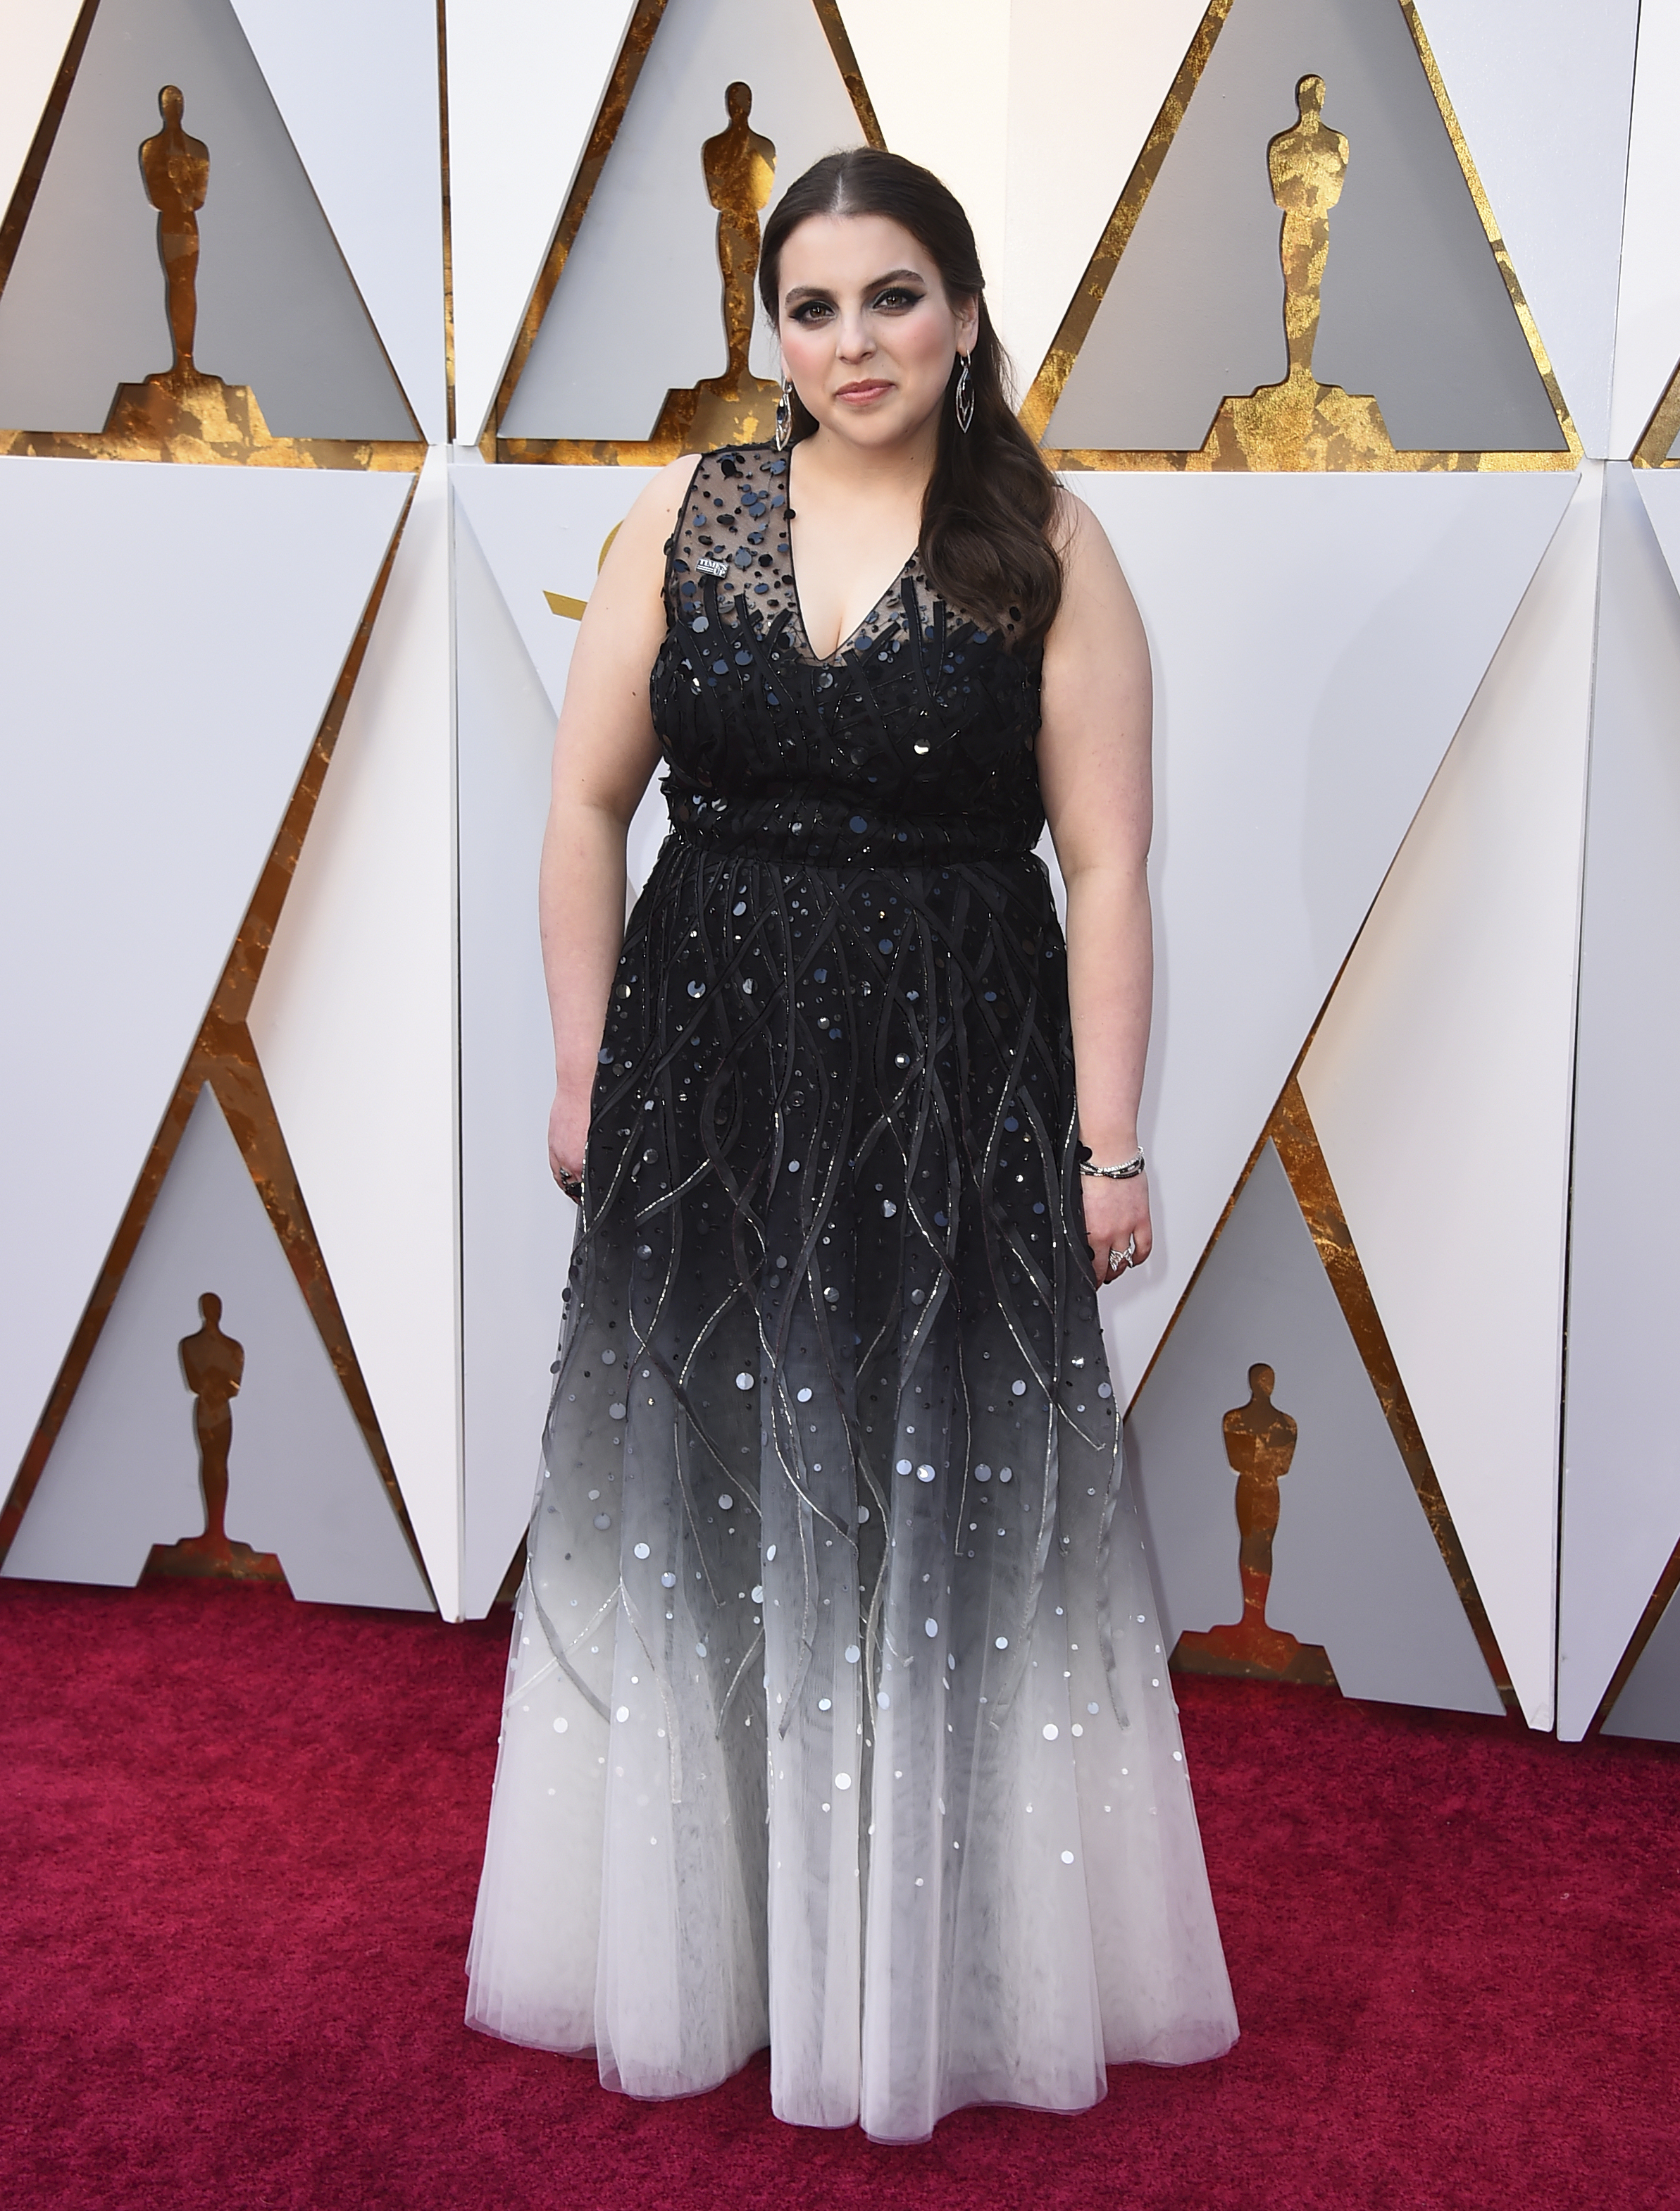 <div class='meta'><div class='origin-logo' data-origin='none'></div><span class='caption-text' data-credit='Jordan Strauss/Invision/AP'>Beanie Feldstein of ''Lady Bird'' arrives at the Oscars on Sunday, March 4, 2018, at the Dolby Theatre in Los Angeles.</span></div>